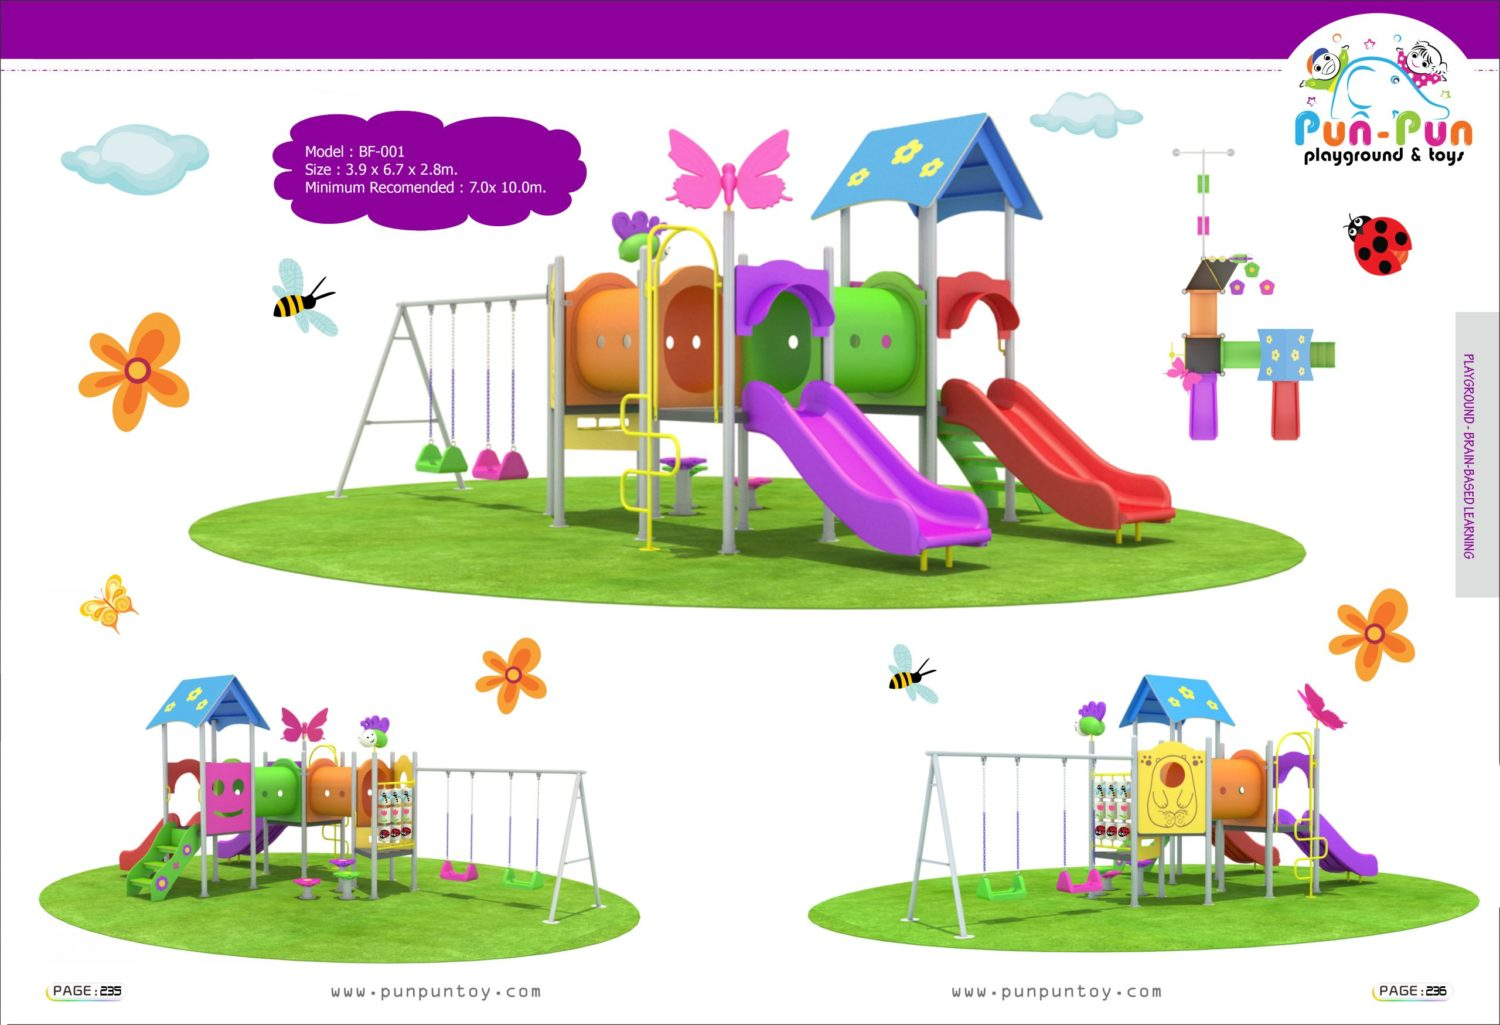 Early childhood playground